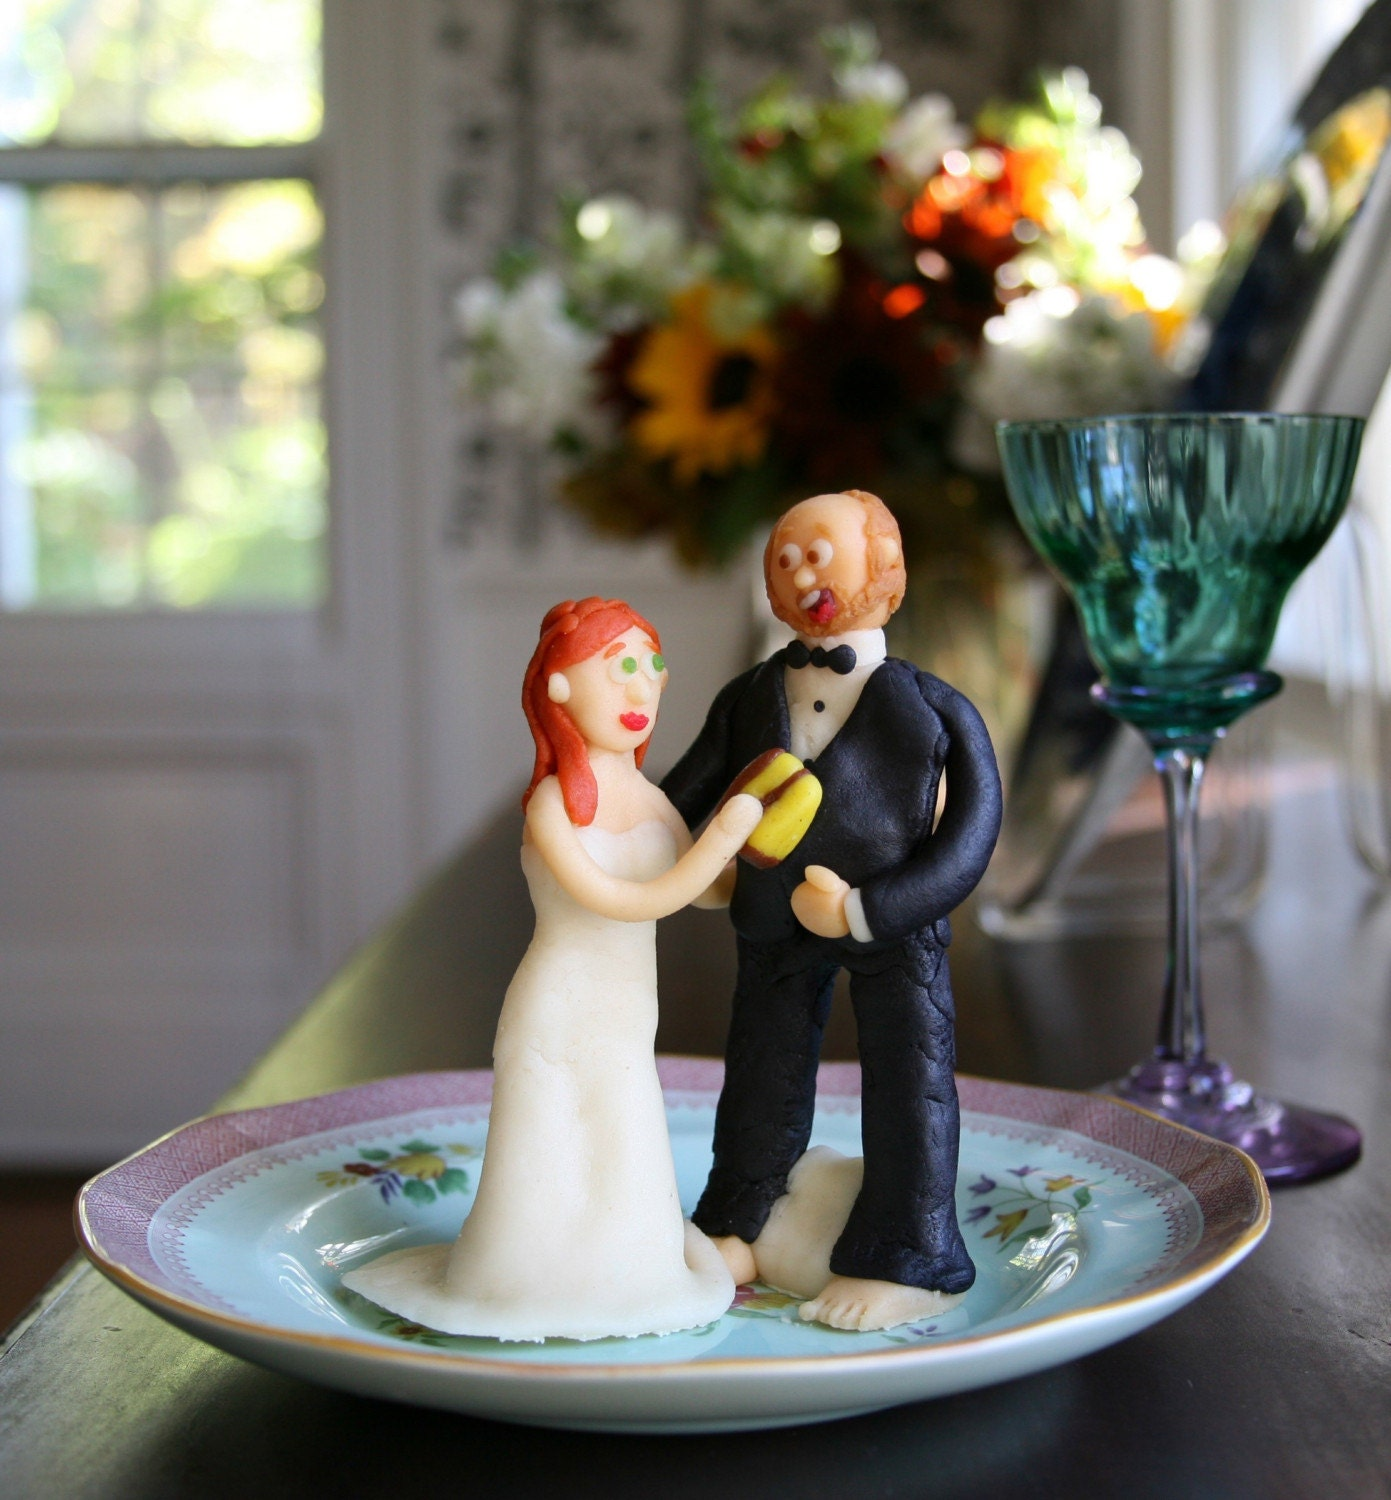 How To Make Marzipan Wedding Cake Toppers